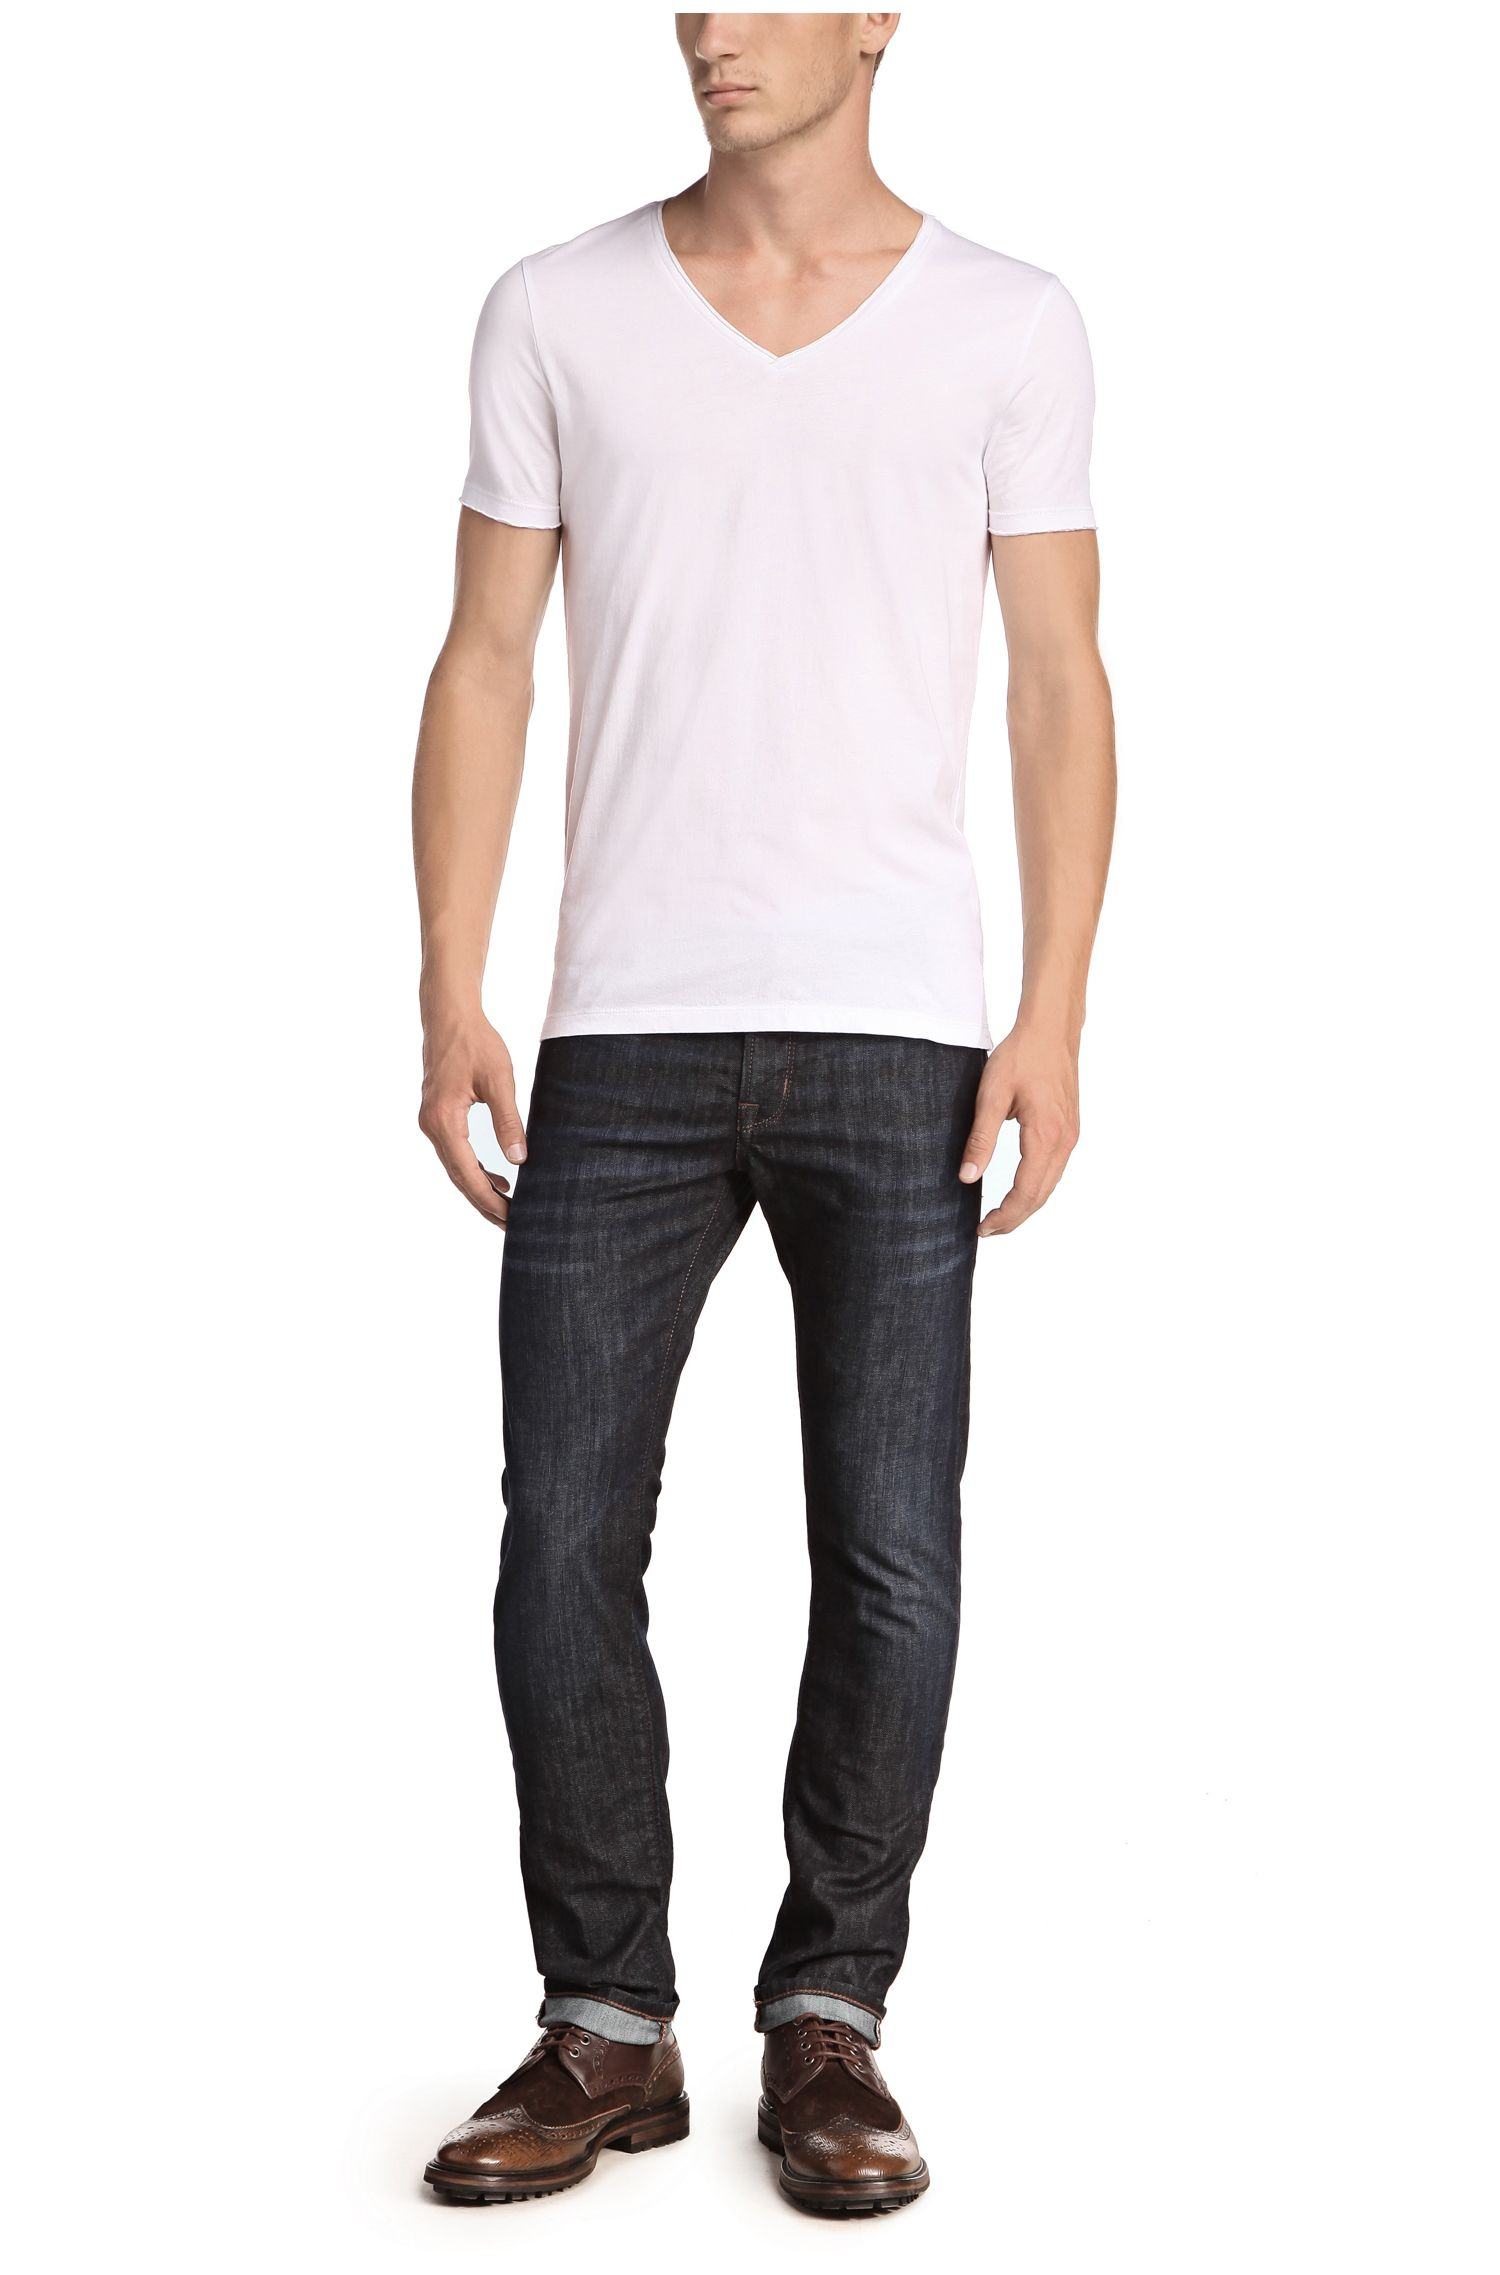 Regular-fit T-shirt with raw-cut V neck